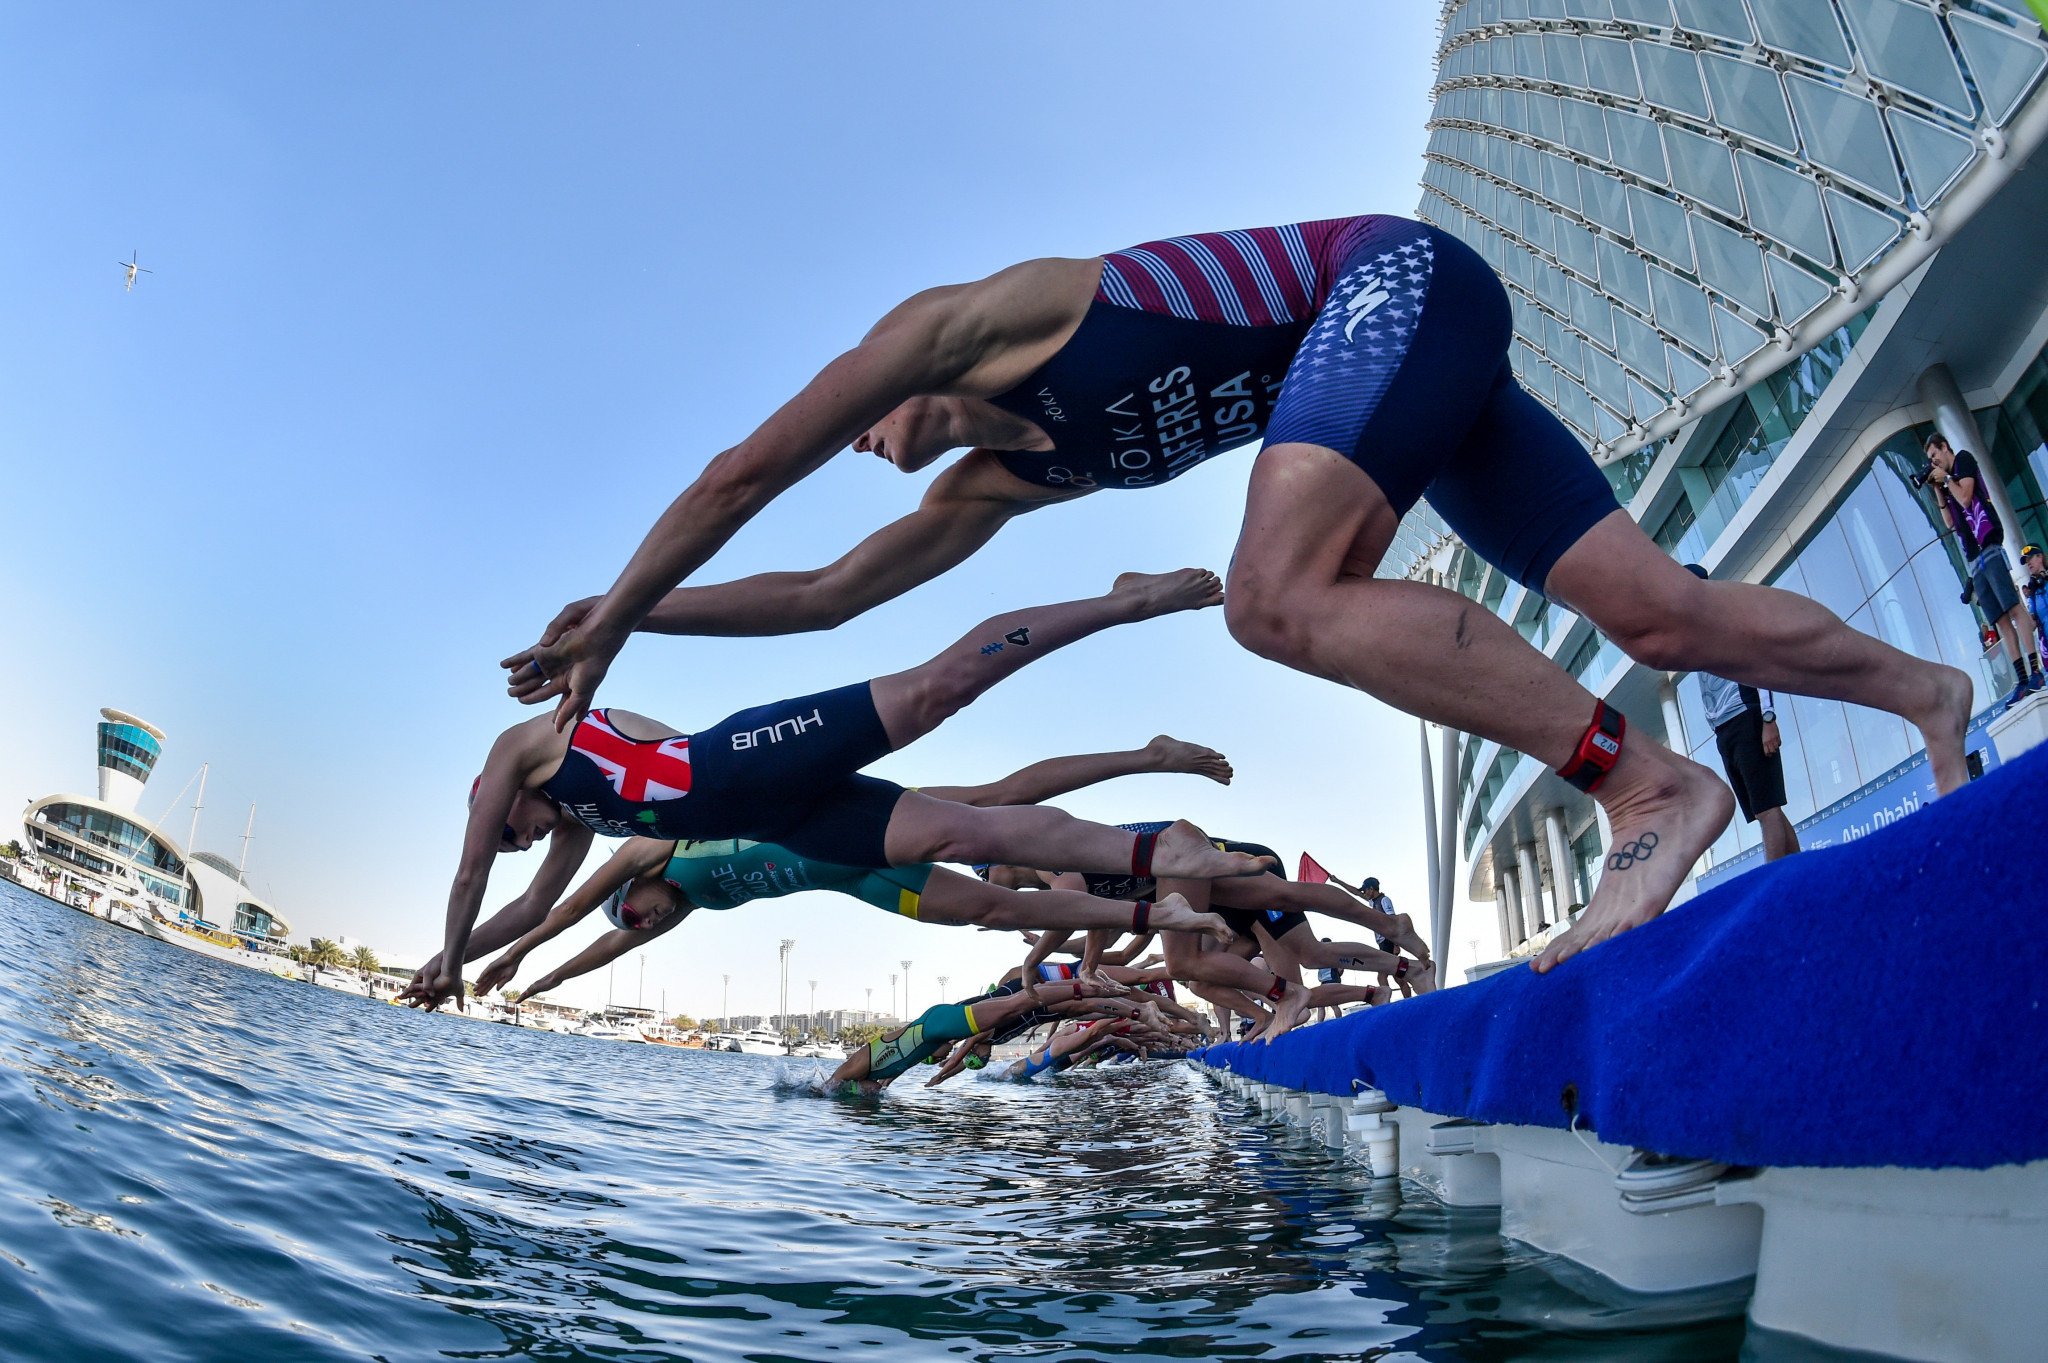 World Triathlon Championships event in Abu Dhabi postponed to November